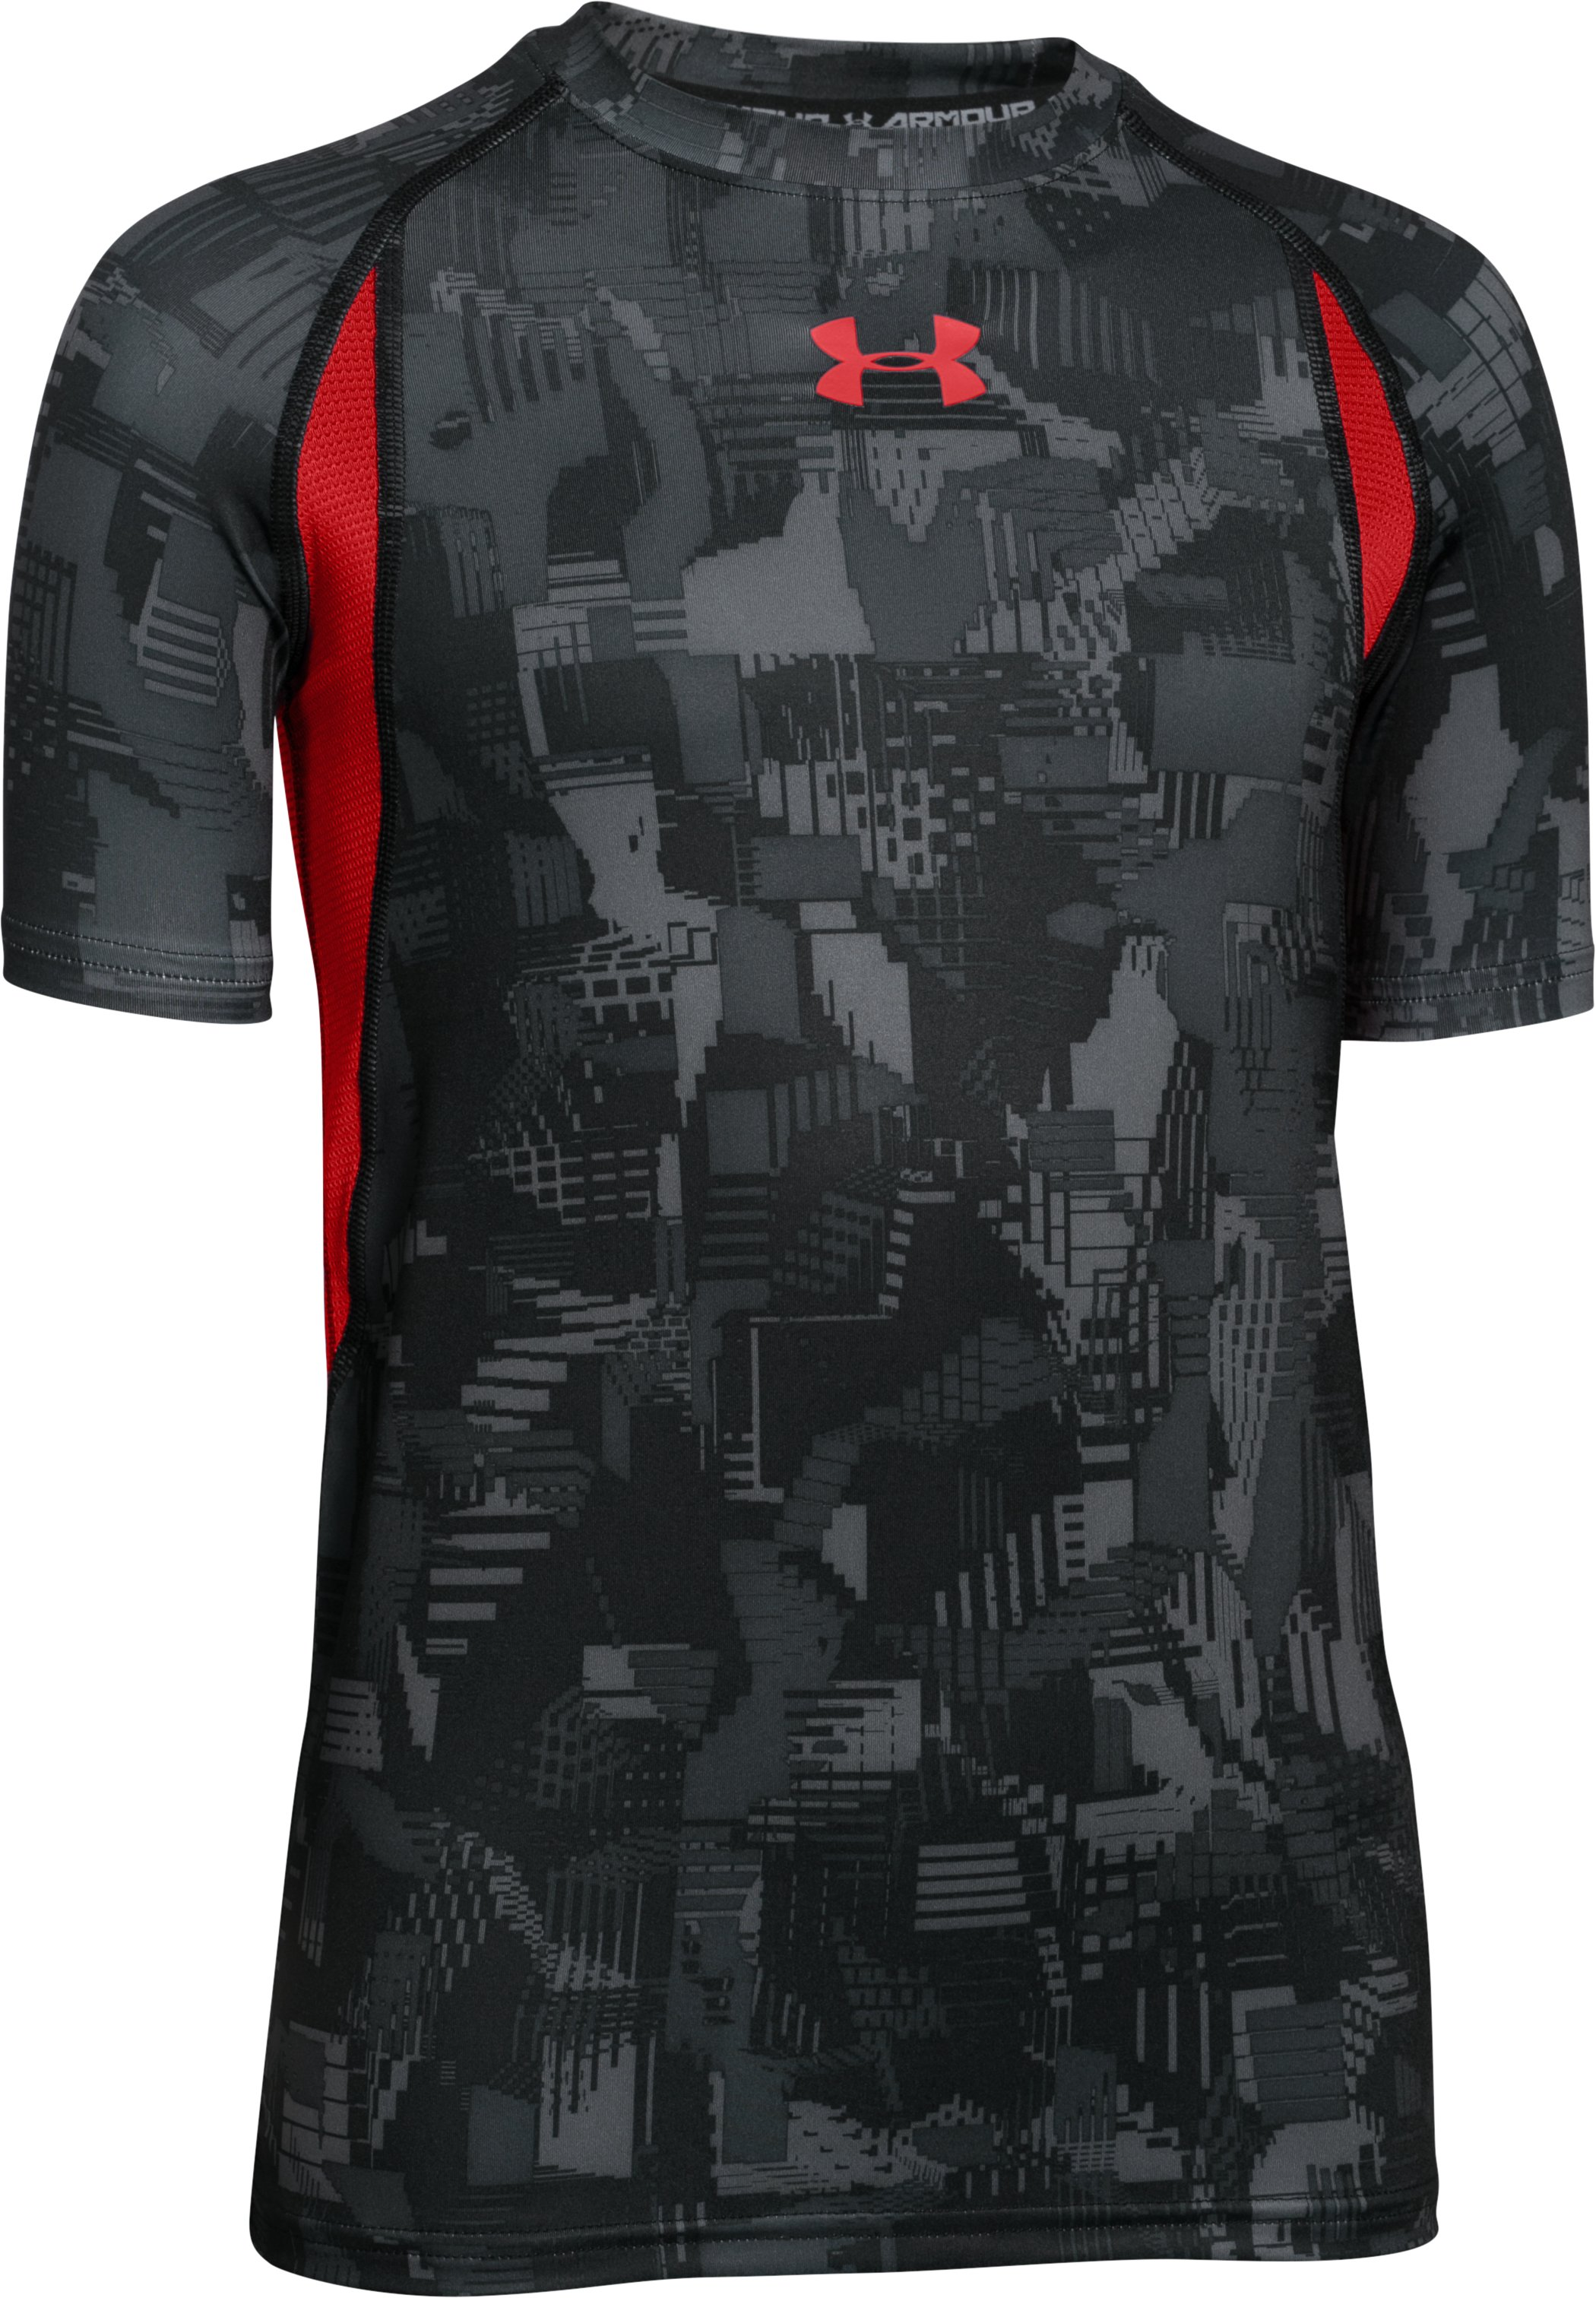 Boys' UA HeatGear® Armour Up Printed Fitted Short Sleeve Shirt, STEALTH GRAY